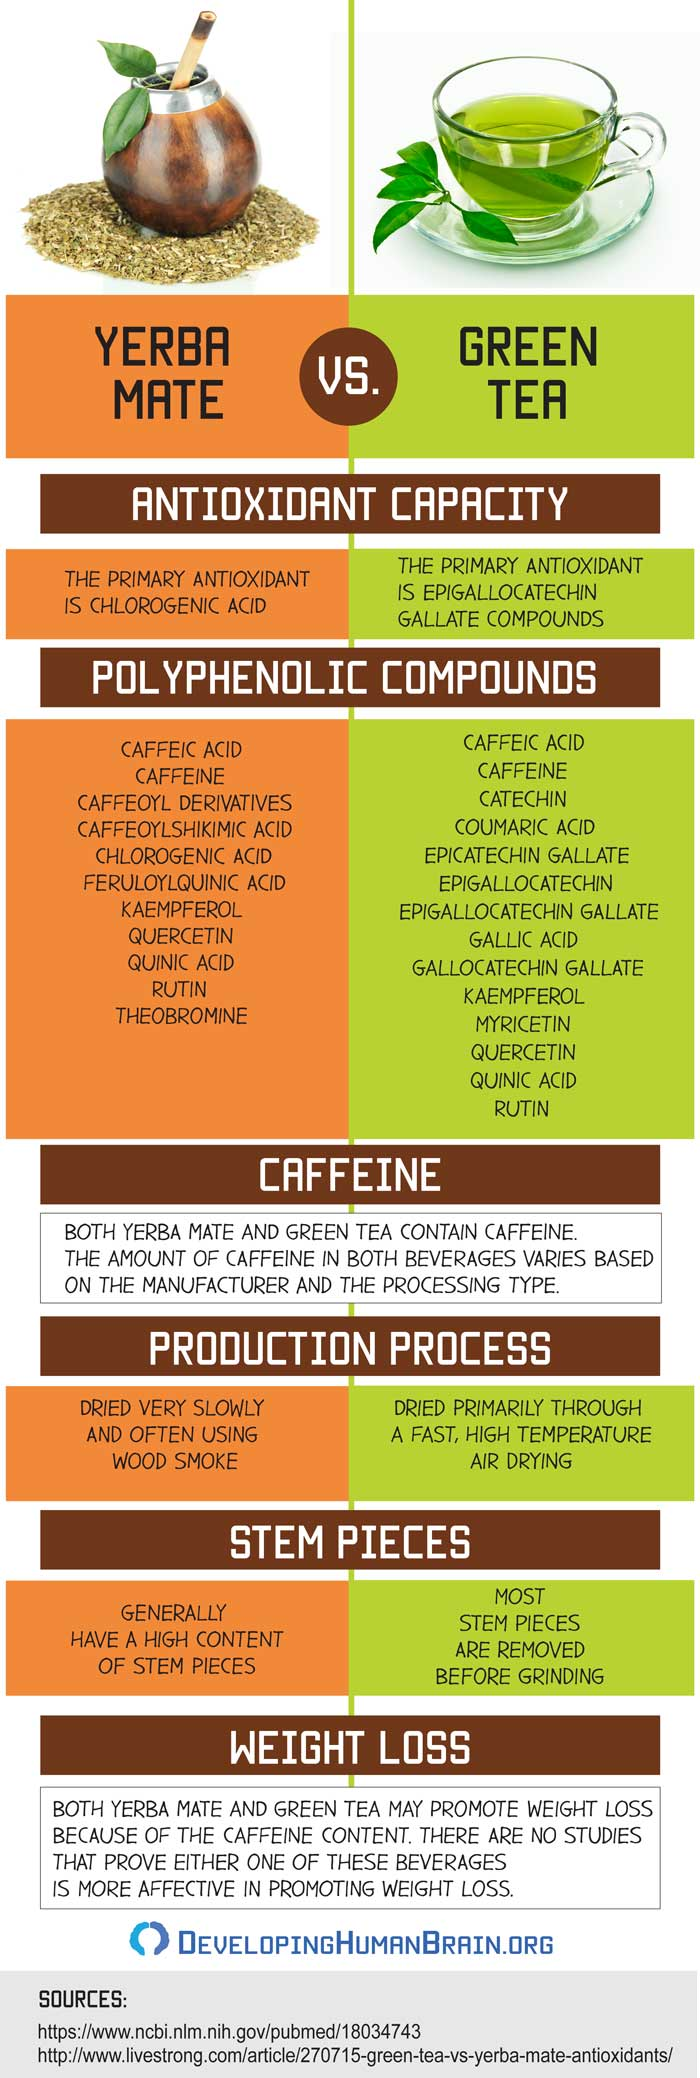 yerba mate vs green tea infographic